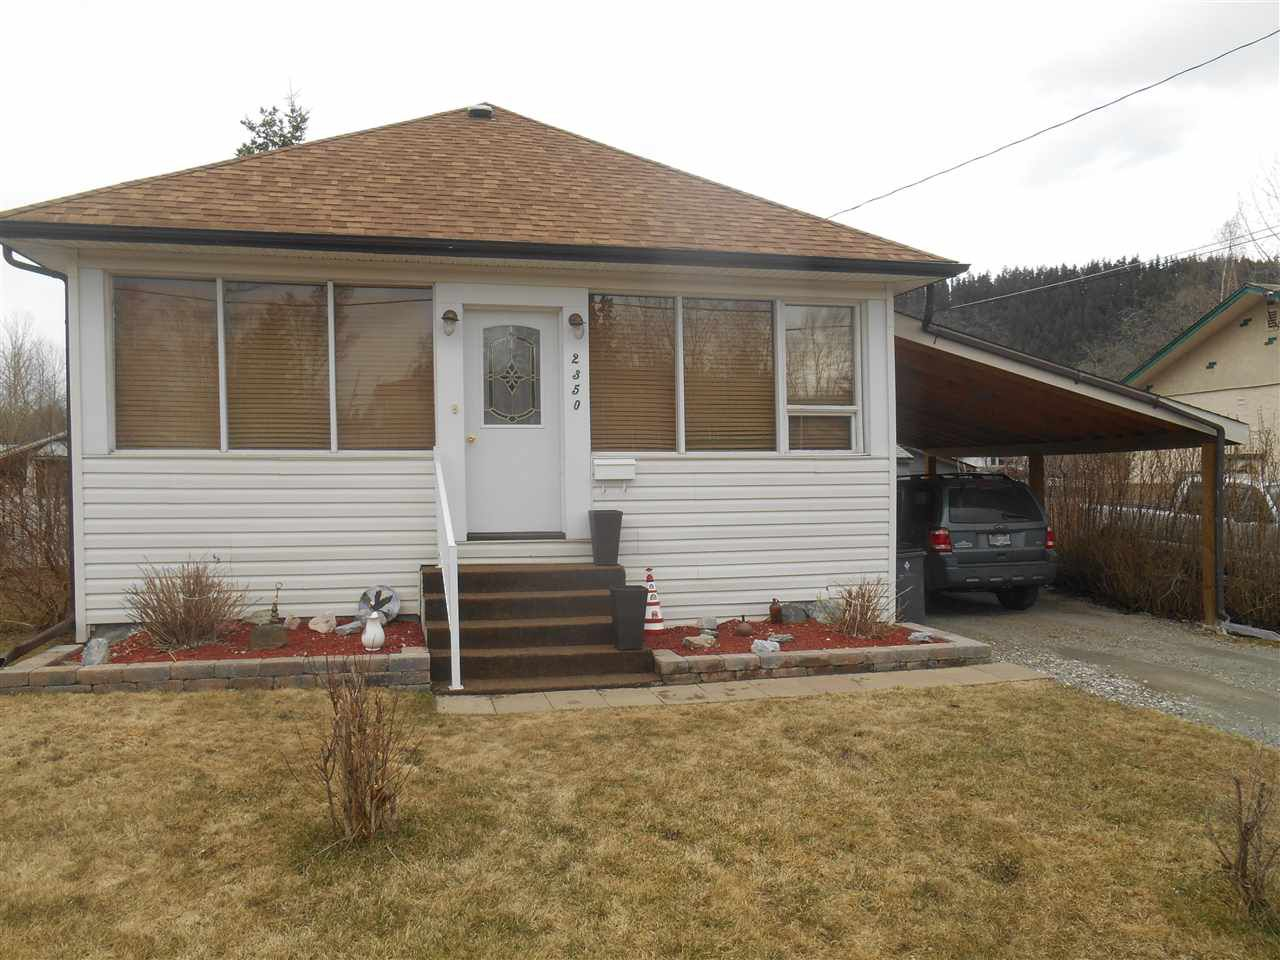 Main Photo: 2350 ROYAL Crescent in Prince George: South Fort George House for sale (PG City Central (Zone 72))  : MLS®# R2155610